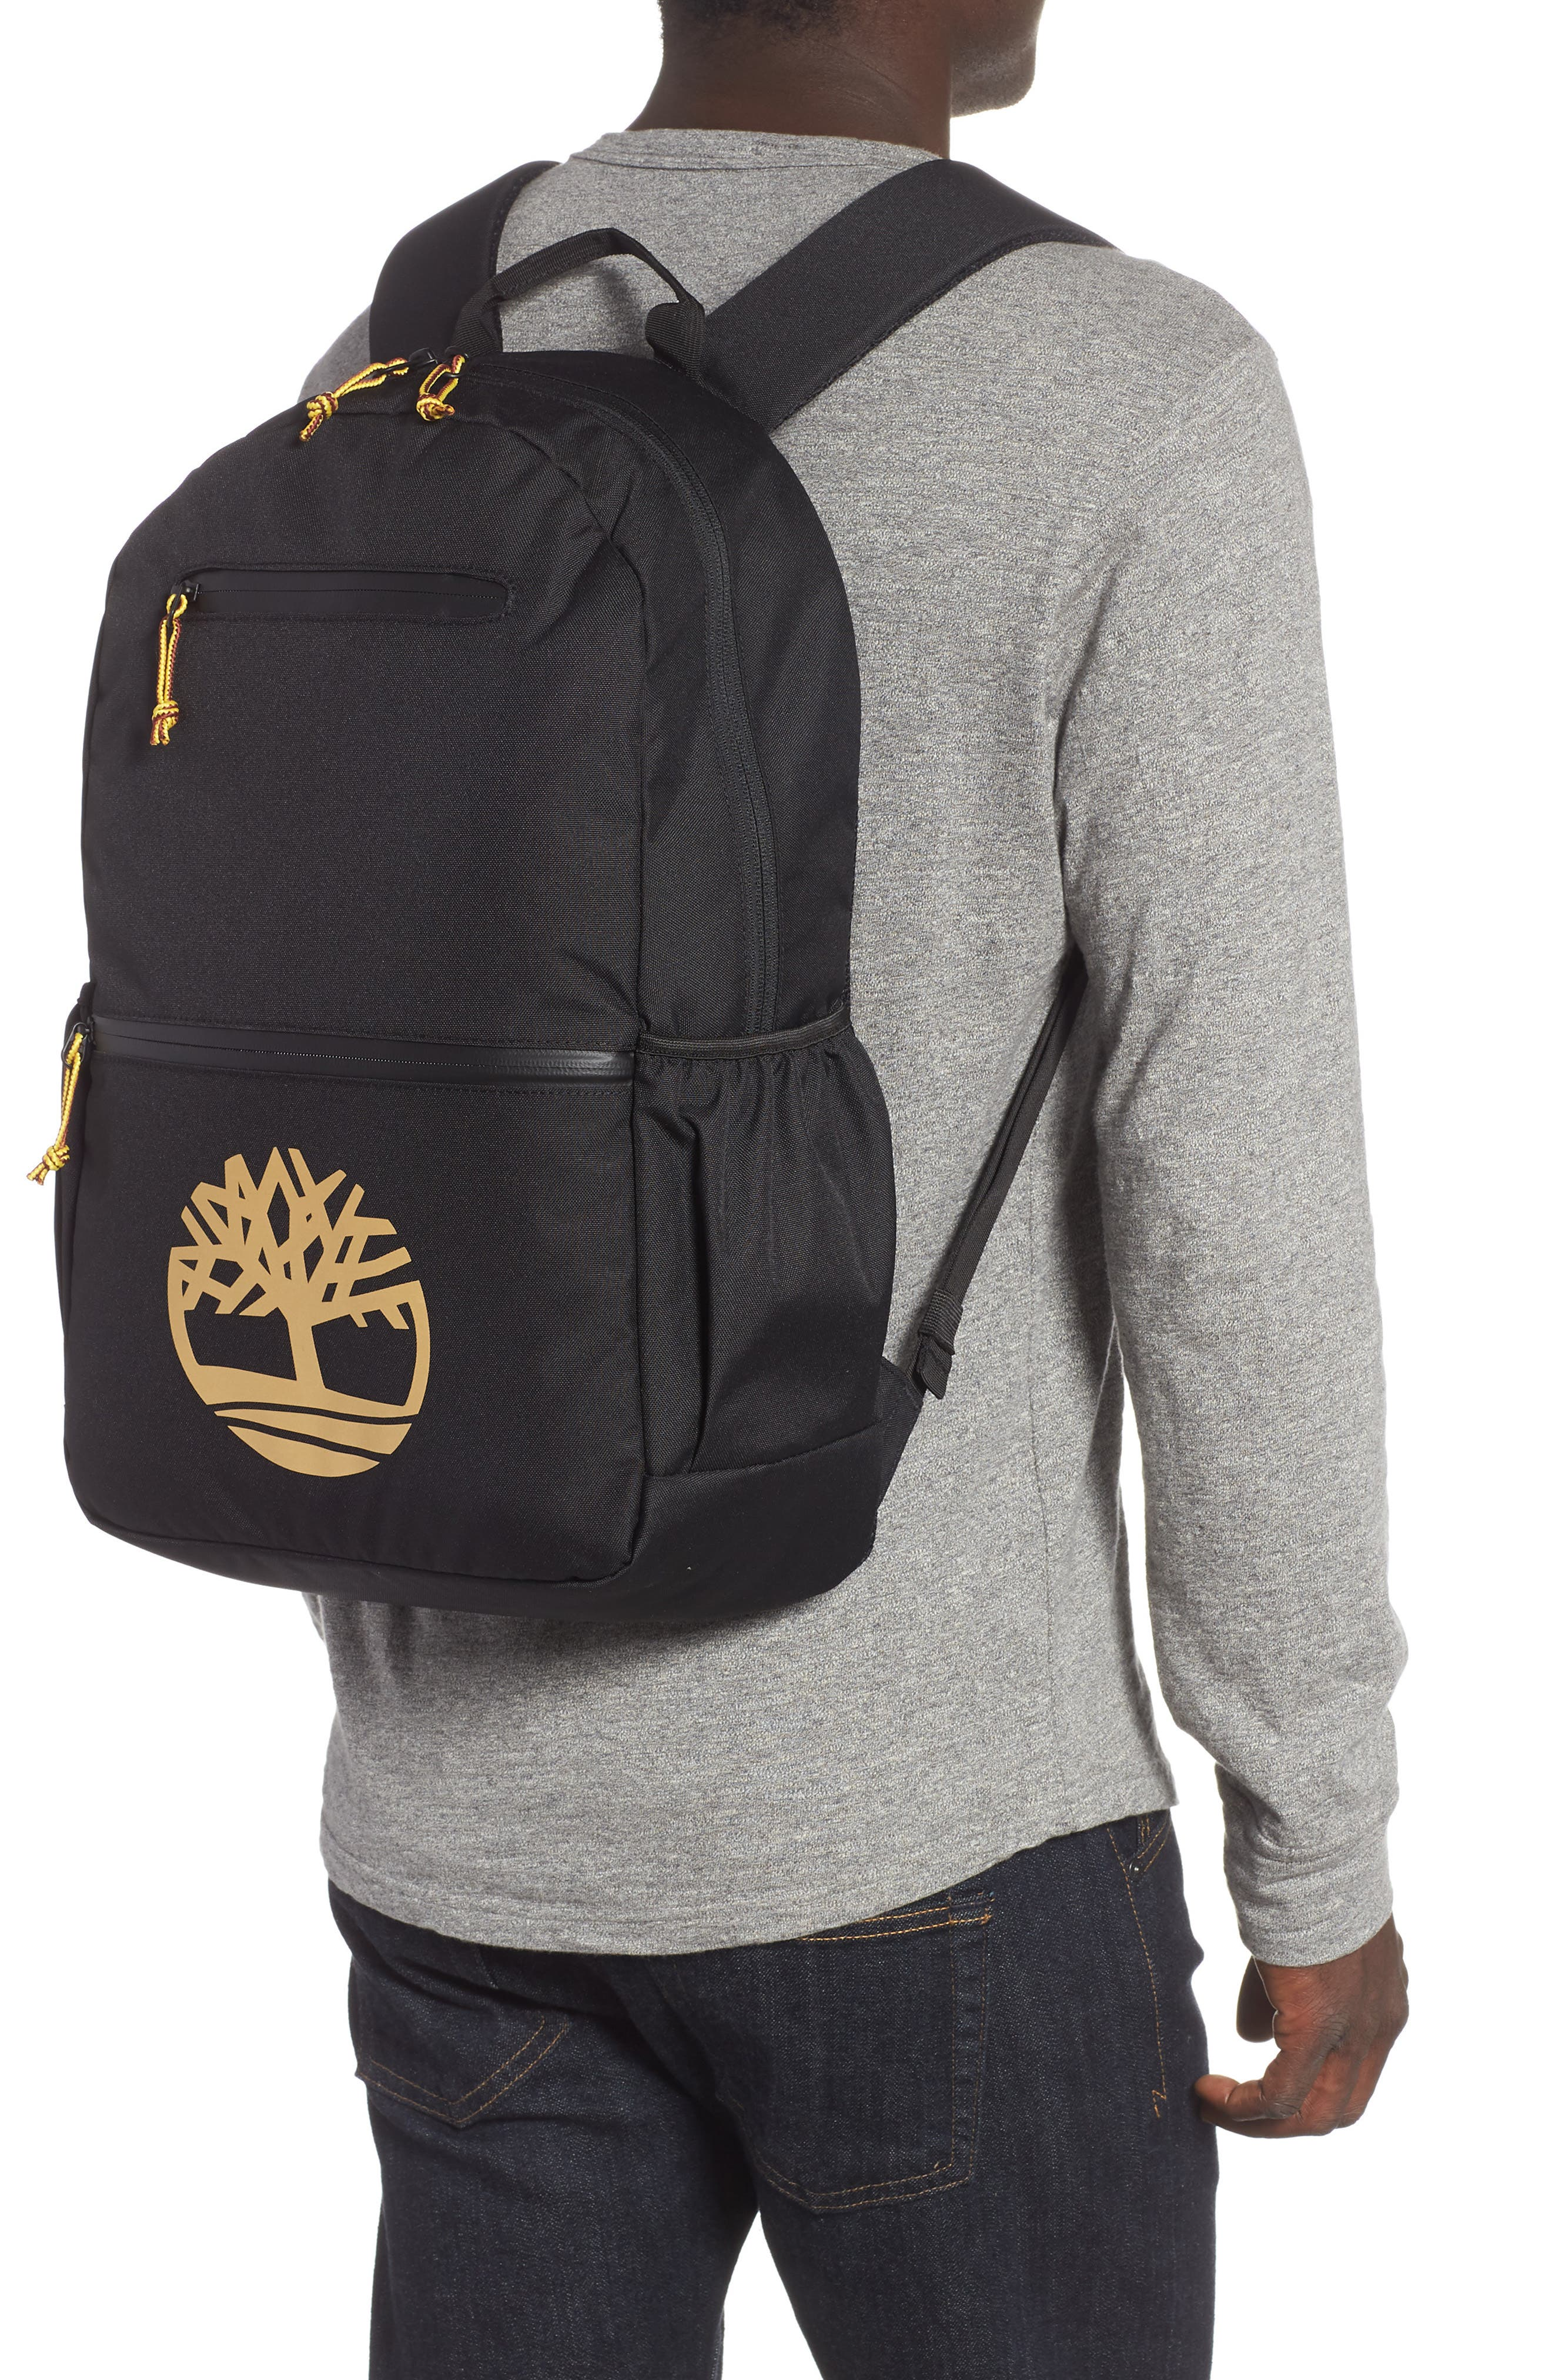 TIMBERLAND, Logo Graphic Water Resistant Backpack, Alternate thumbnail 2, color, BLACK